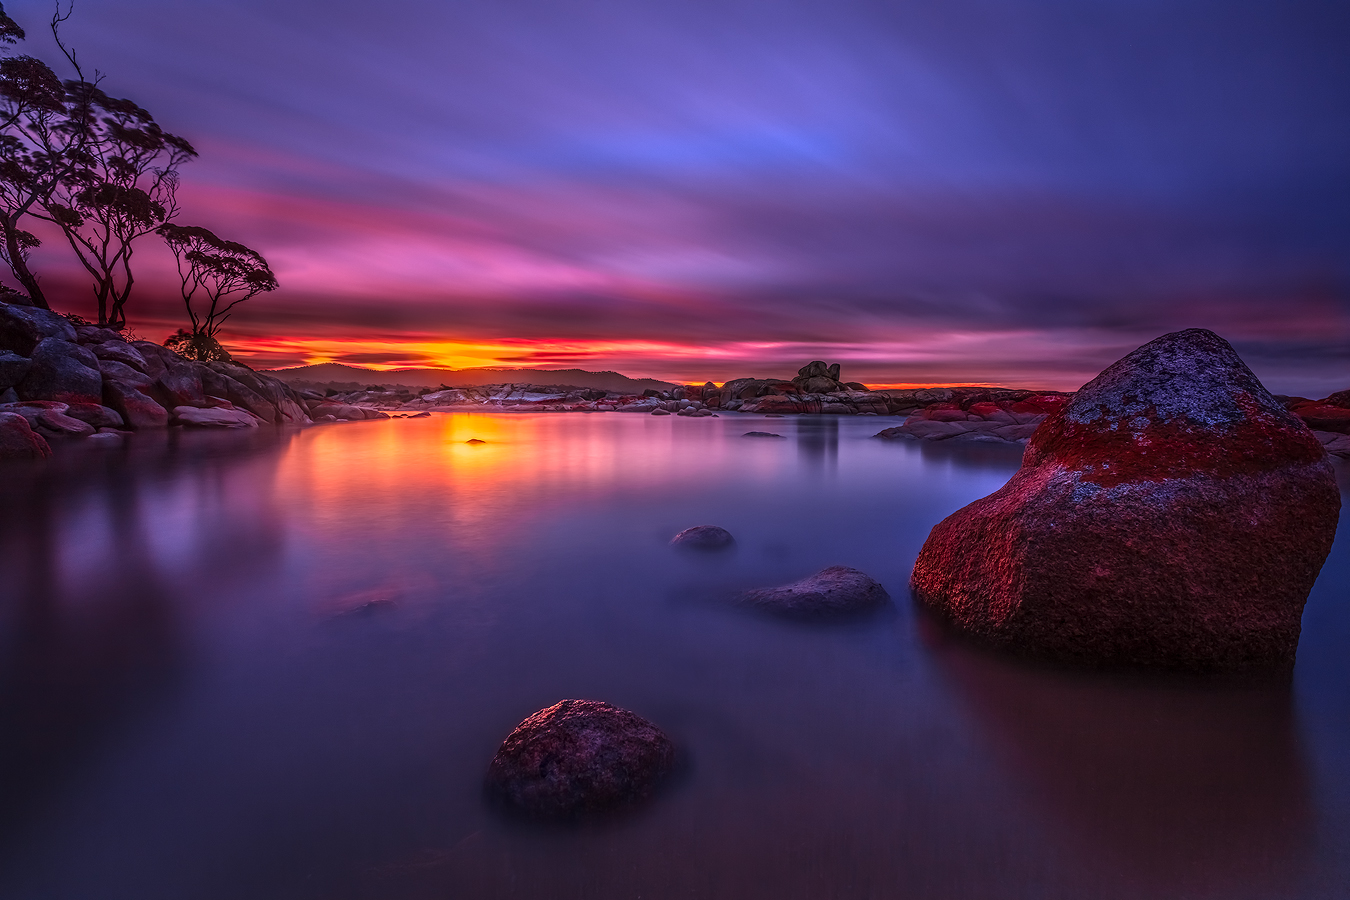 Landscape Photography Workshop Tours - Binalong Bay, Tasmania | We Are Raw Photography Tours